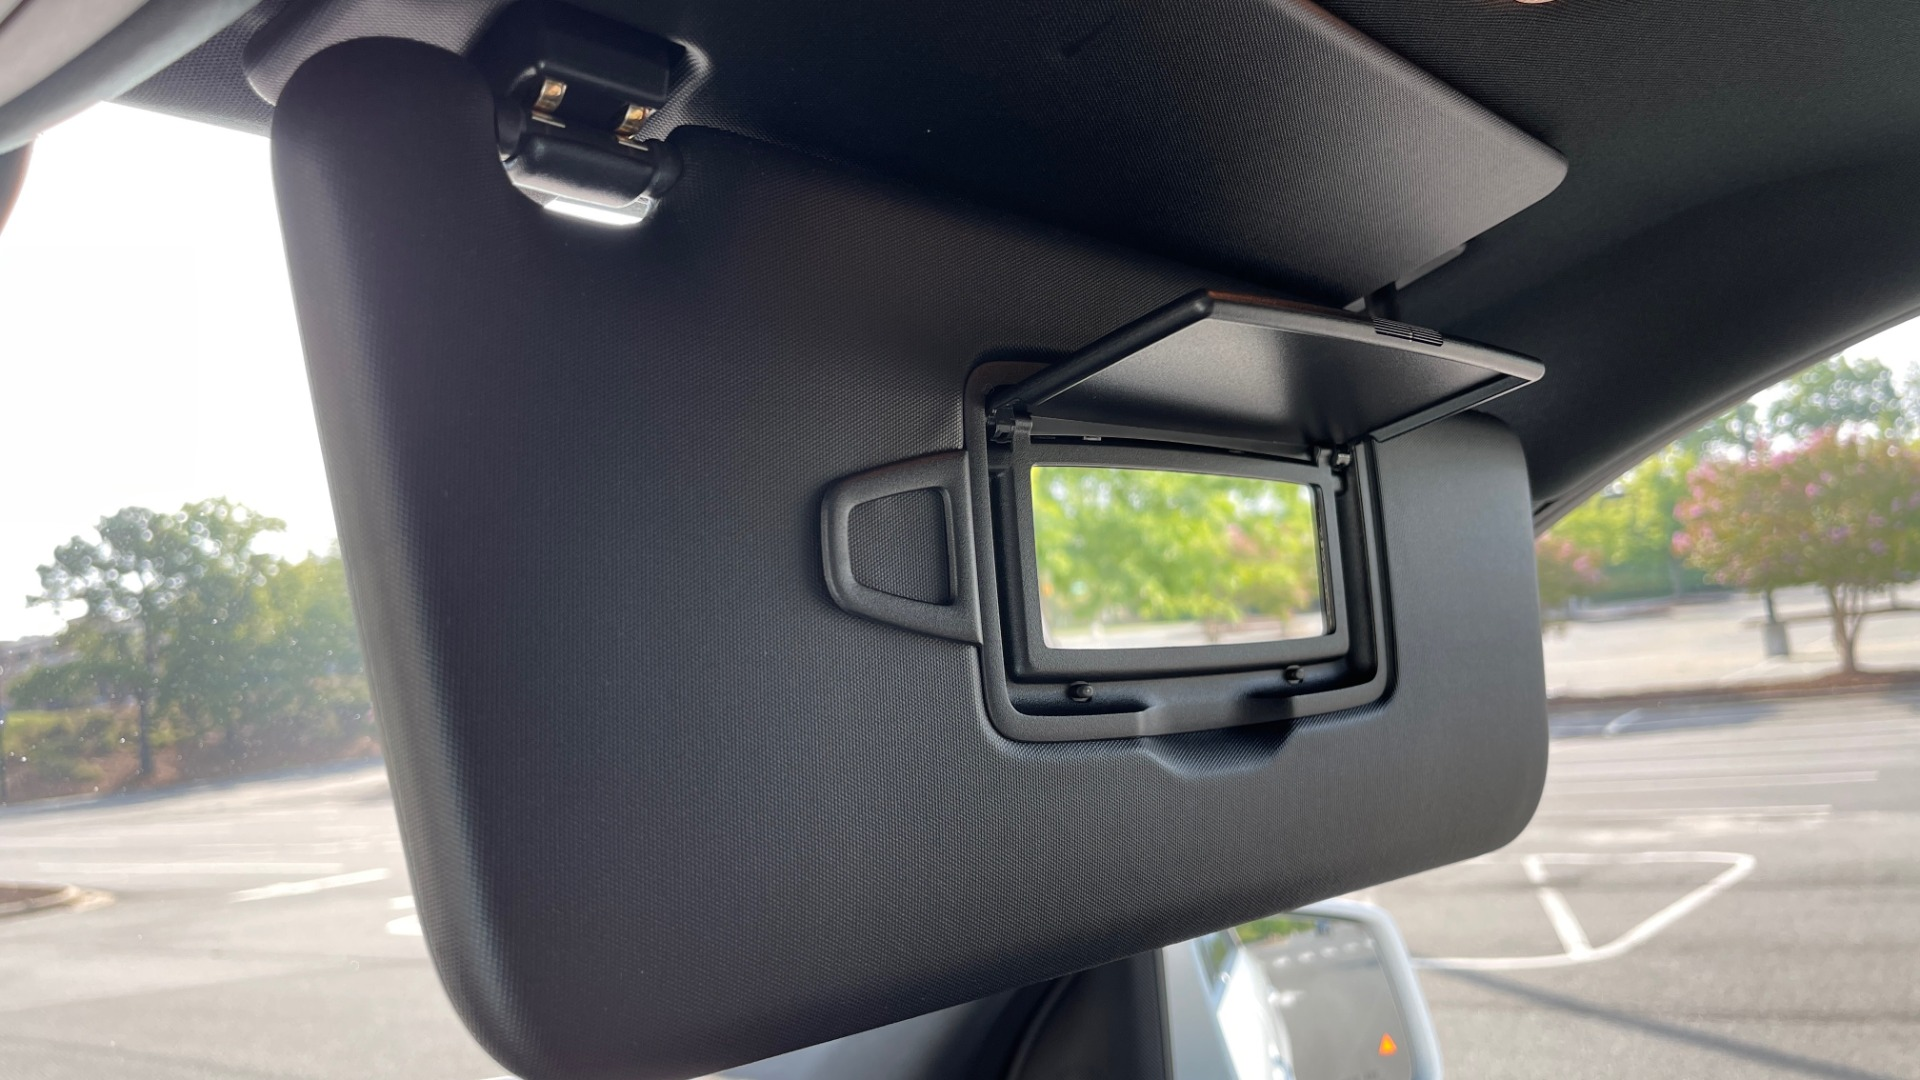 Used 2018 Mercedes-Benz GLE 350 4MATIC PREMIUM / NAV / SUNROOF / HTD STS / TRAILER HITCH / REARVIEW for sale $36,295 at Formula Imports in Charlotte NC 28227 48